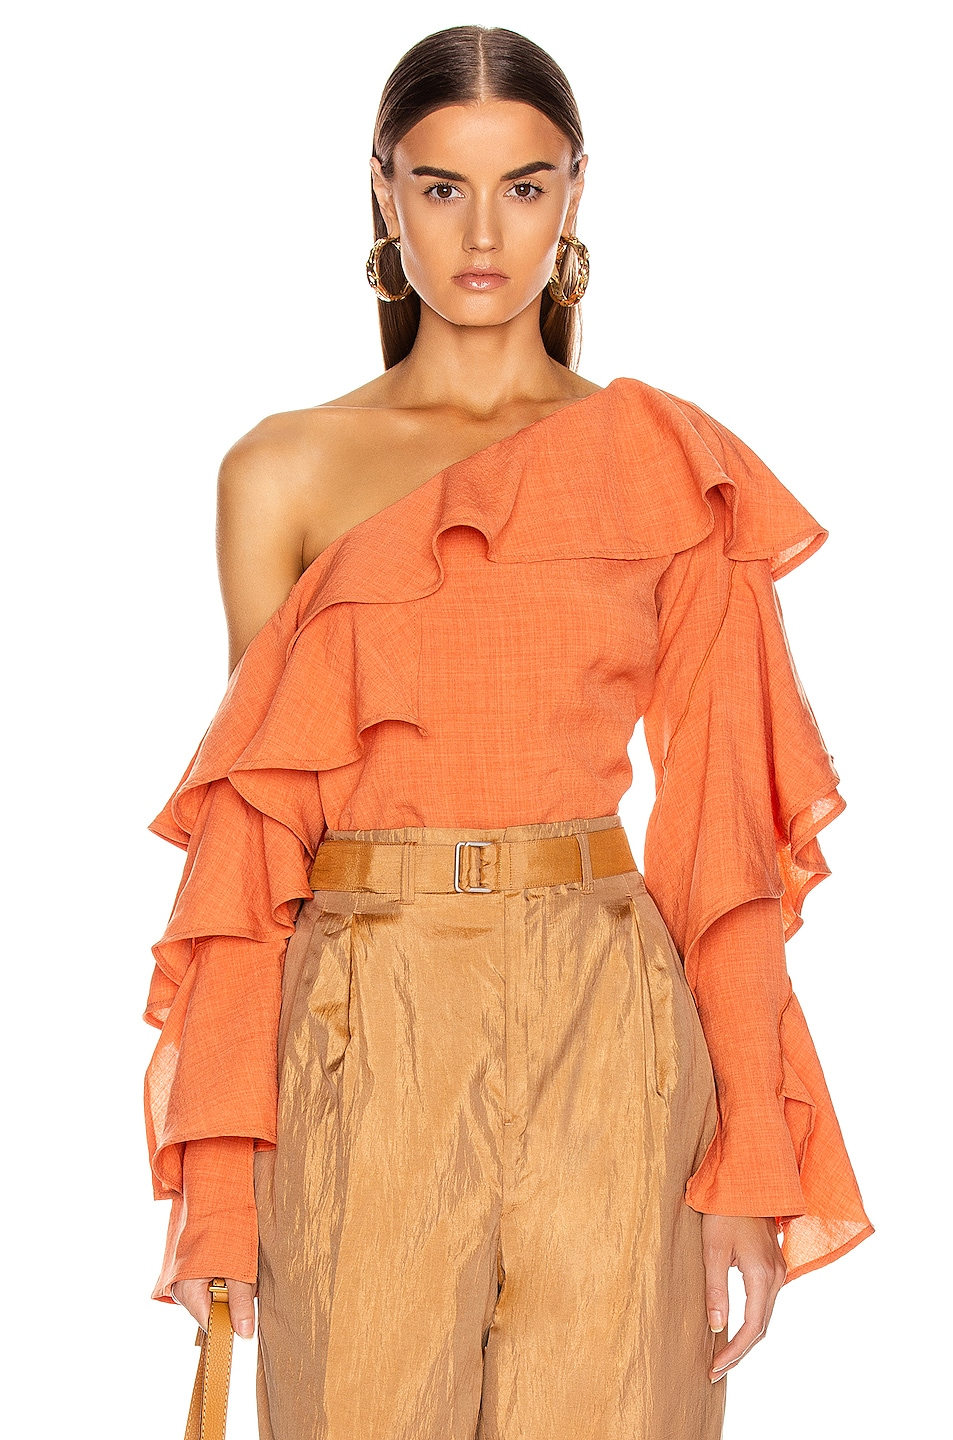 Image 1 of Atoir Give A Little Top in Sunset Orange